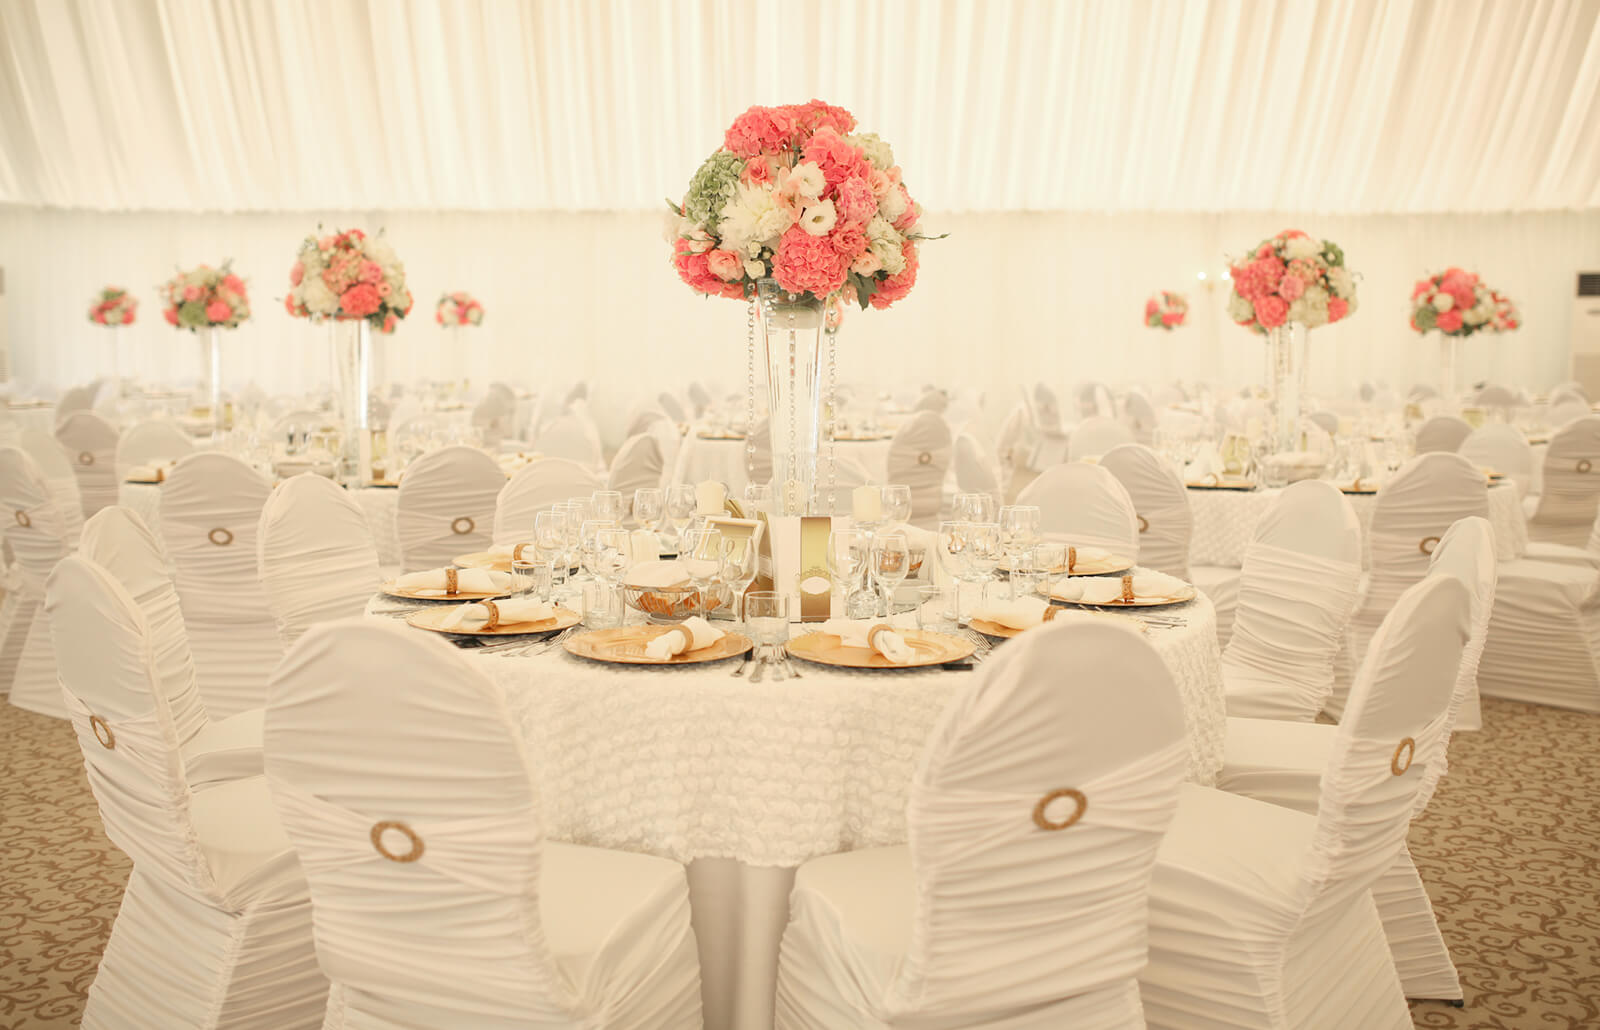 Simple Wedding Decoration Idea With Simple Table Setting